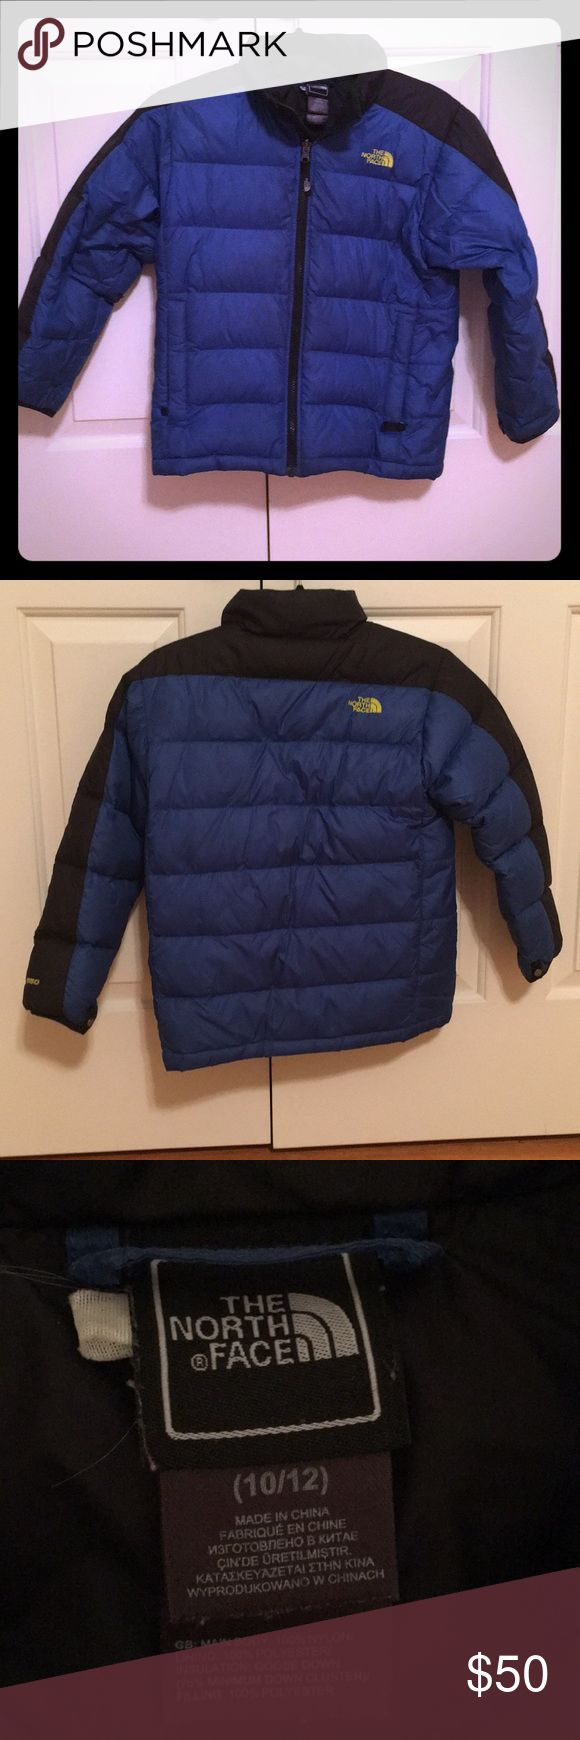 Boys north face winter coat ☃️ Excellent condition boys size 10-12 north face winter coat 😀 North Face Jackets & Coats Puffers